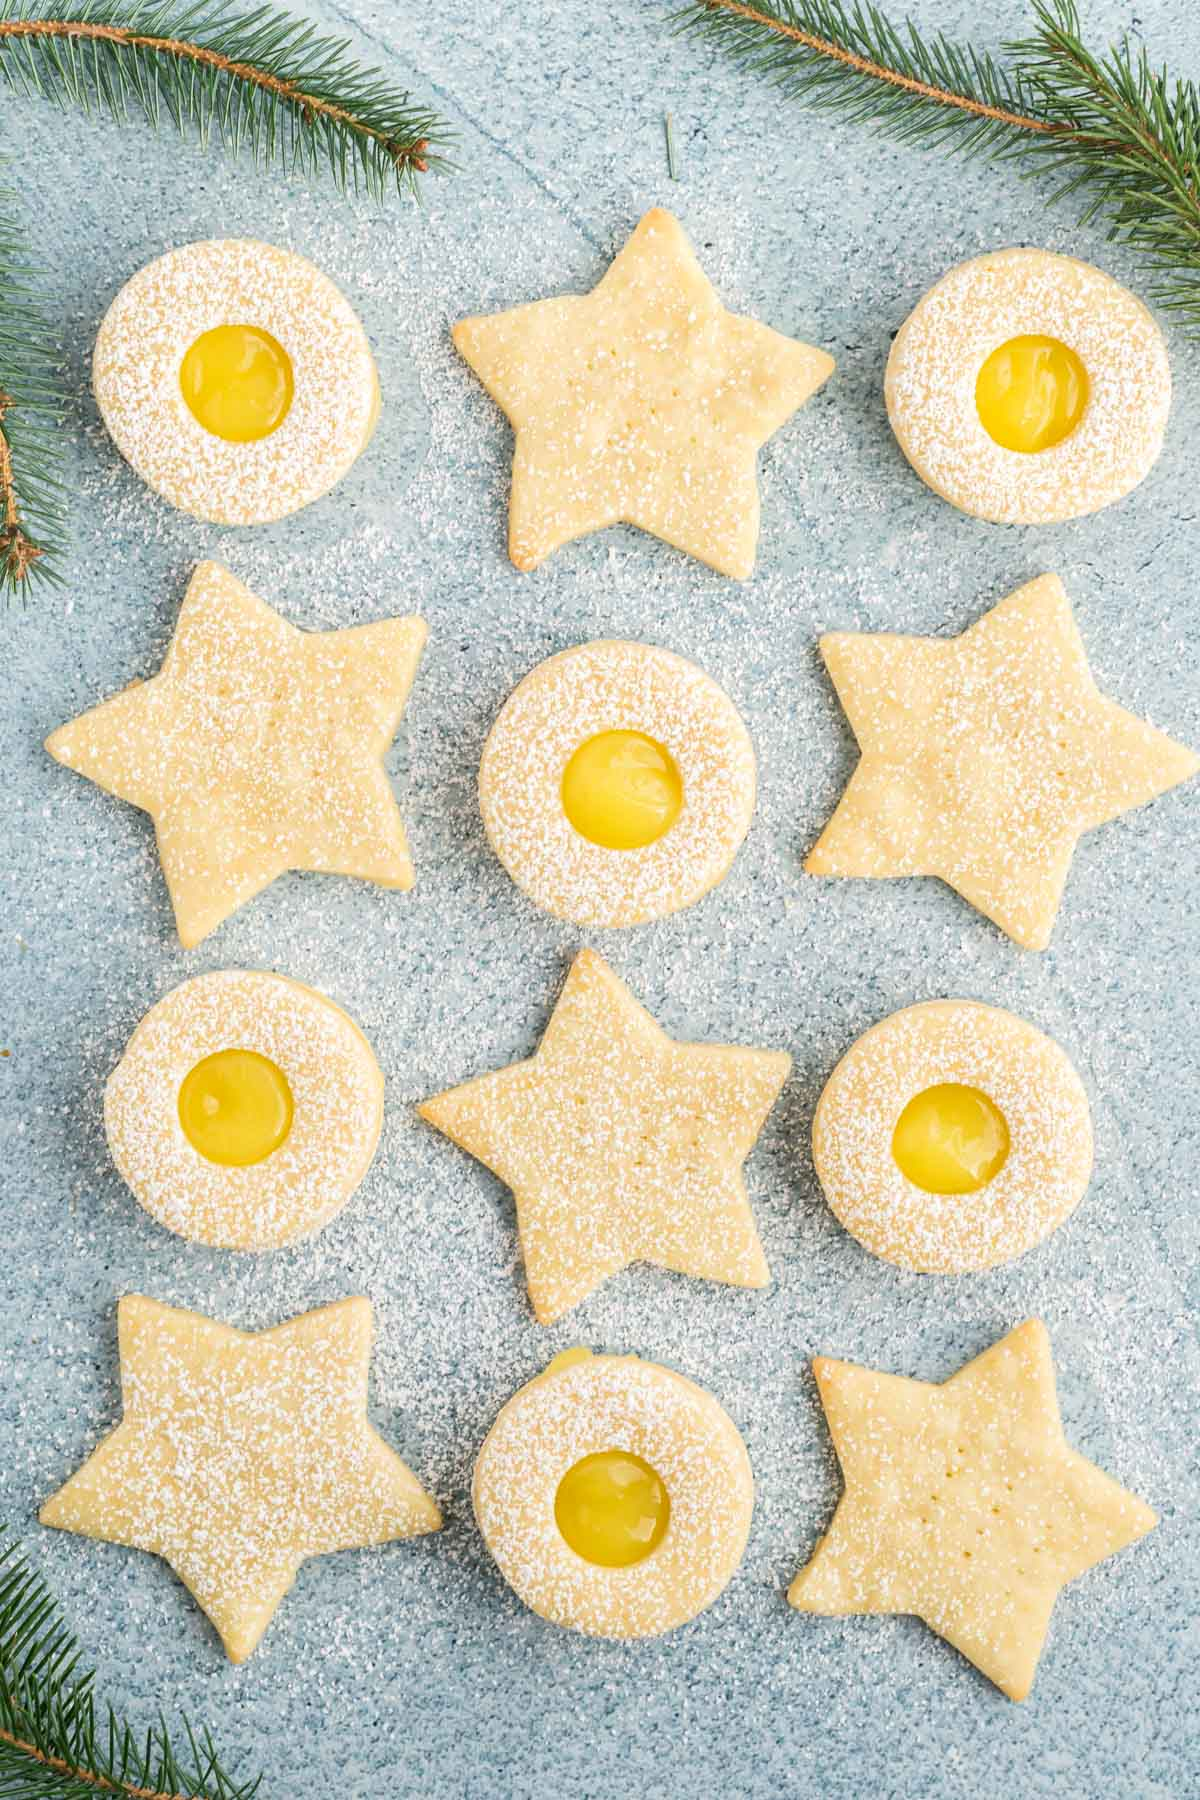 what 25 Christmas Cookie Recipes should I make for Christmas